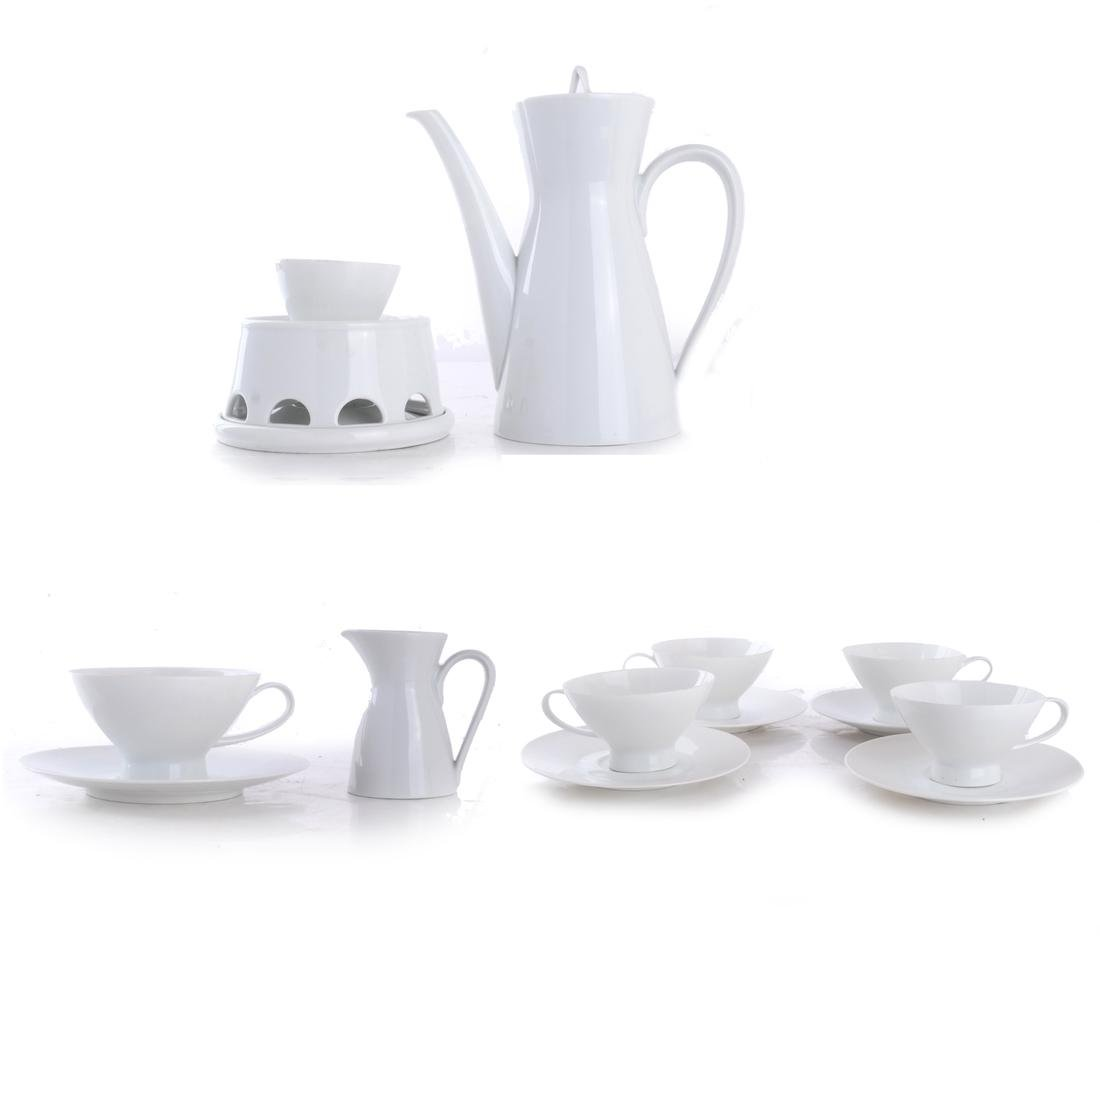 Raymond Lowery Design for Rosenthal, 15 Pieces